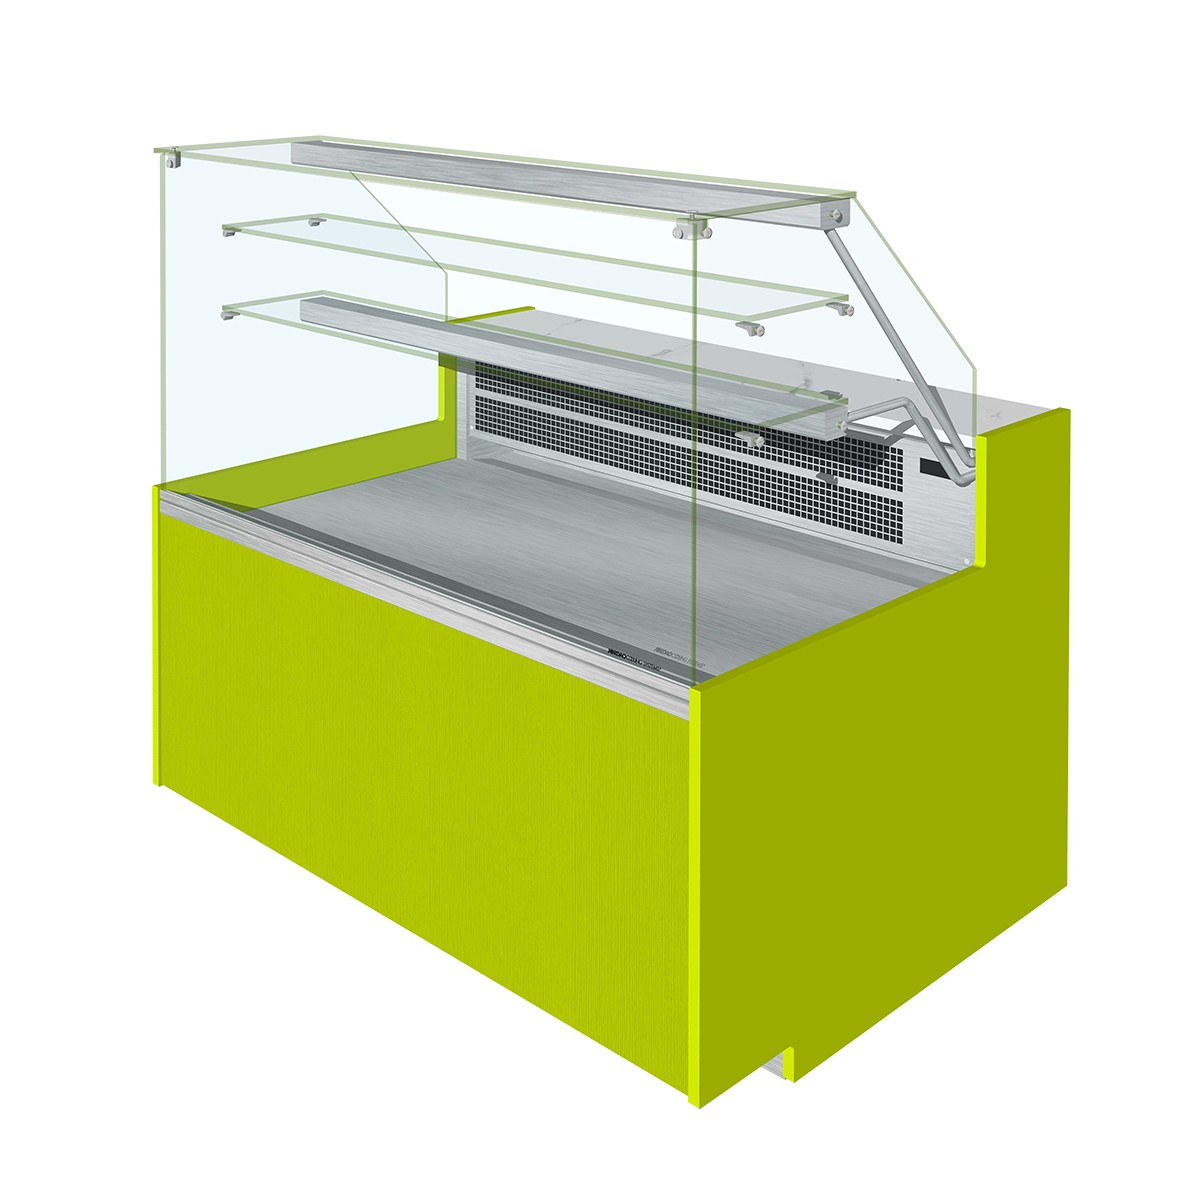 ELINE Flat Glass Serve Over Display Static Cooled With Understorage